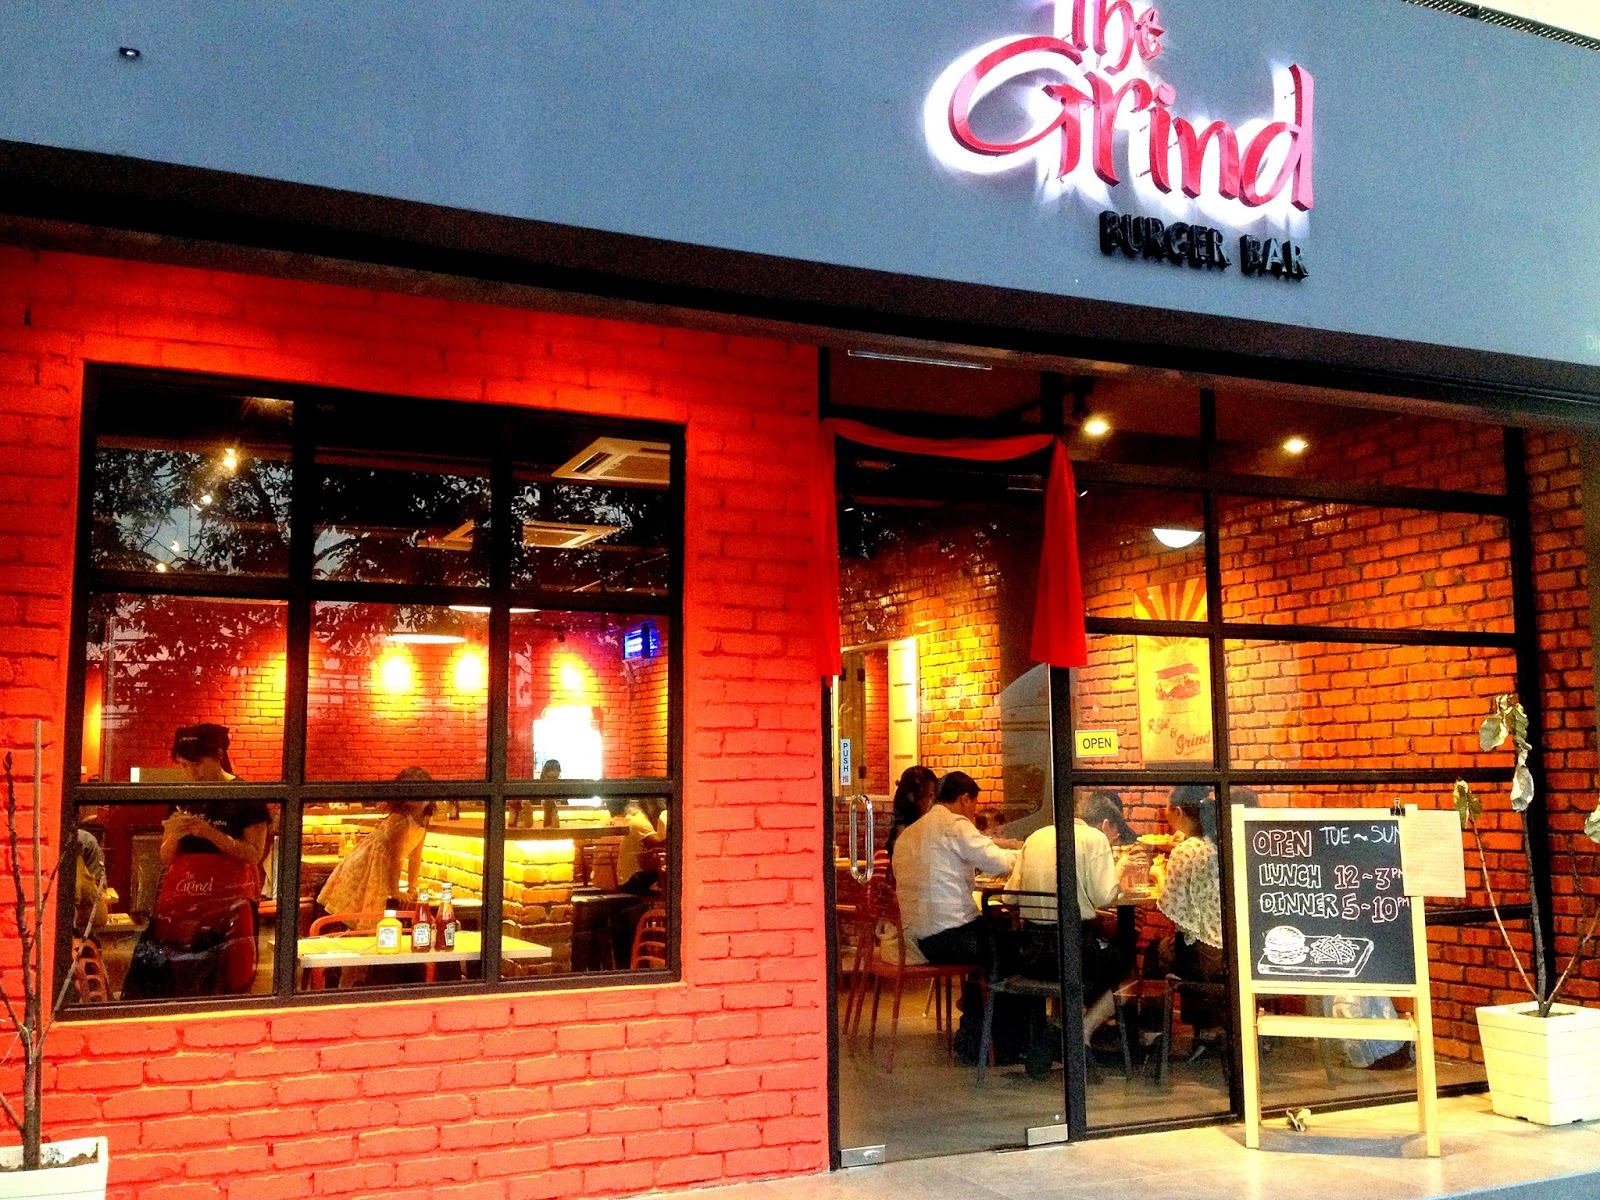 PJ's Section 17 now hosts The Grind Burger Bar, which (unlike the other eateries listed above) operates everyday for both lunch & dinner, moving into the row that's renowned for Kanna Curry House.